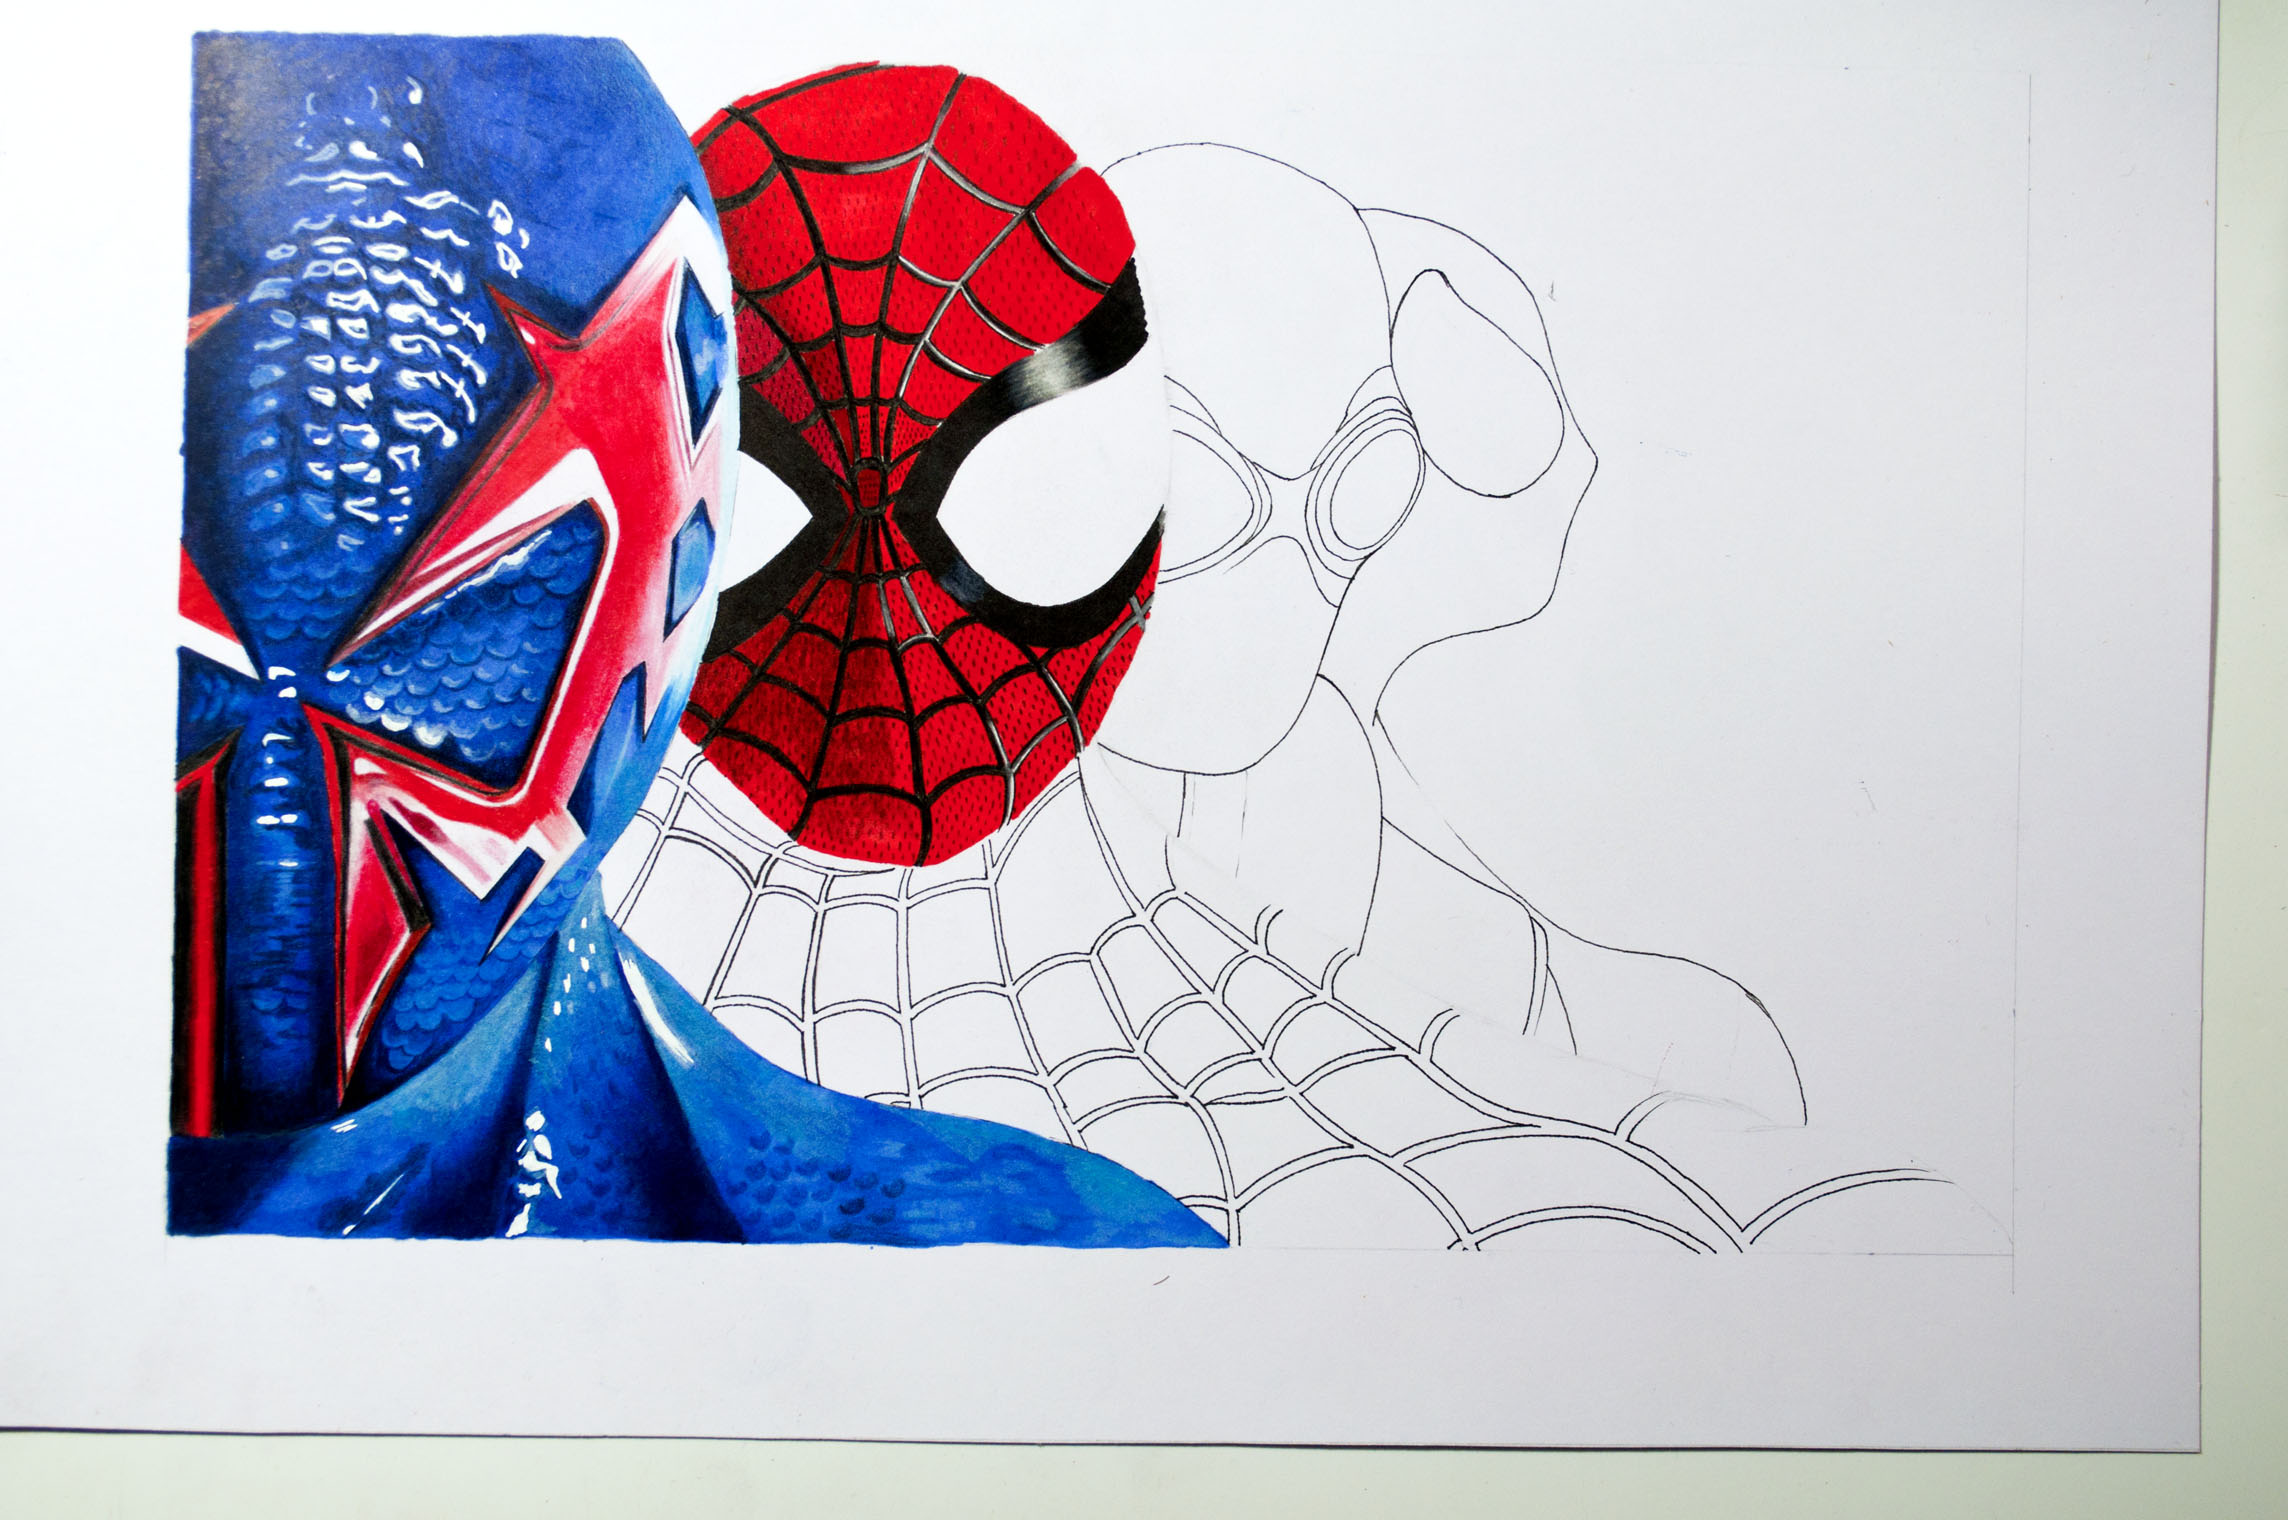 Spiderman Image 3.jpg